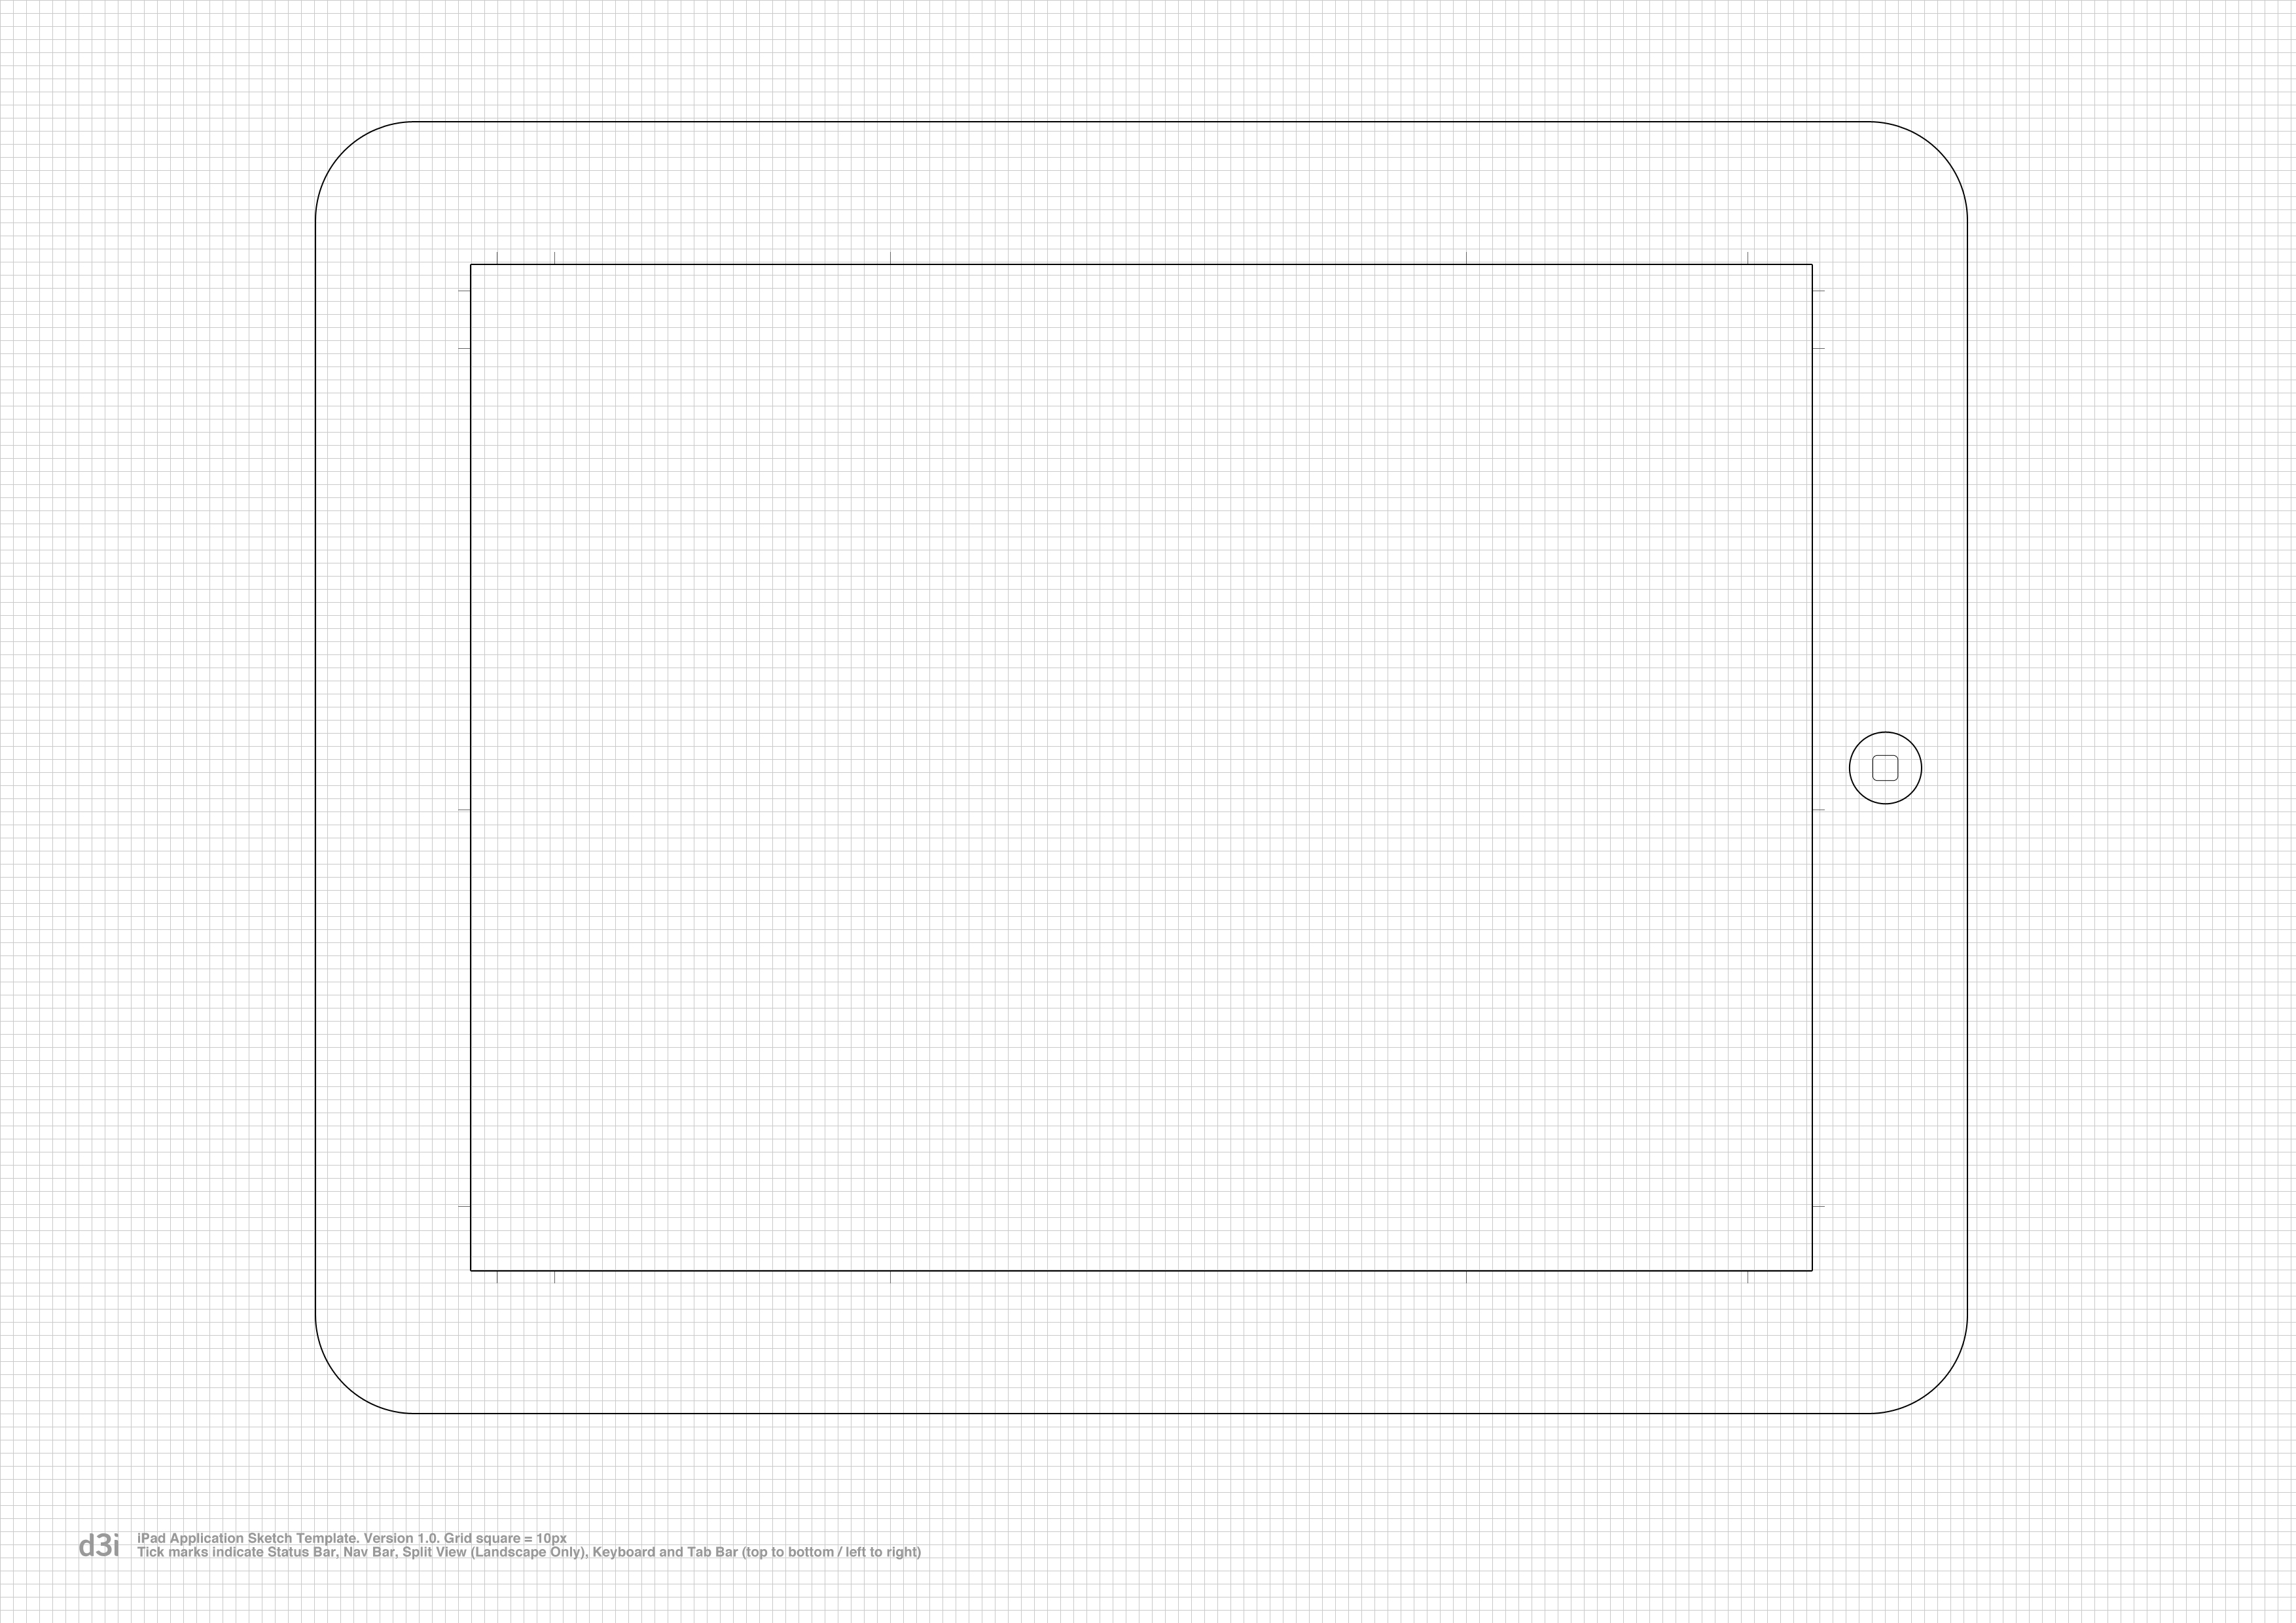 Ipad, ipad mini, flat kit photoshop & sketch template by meno.